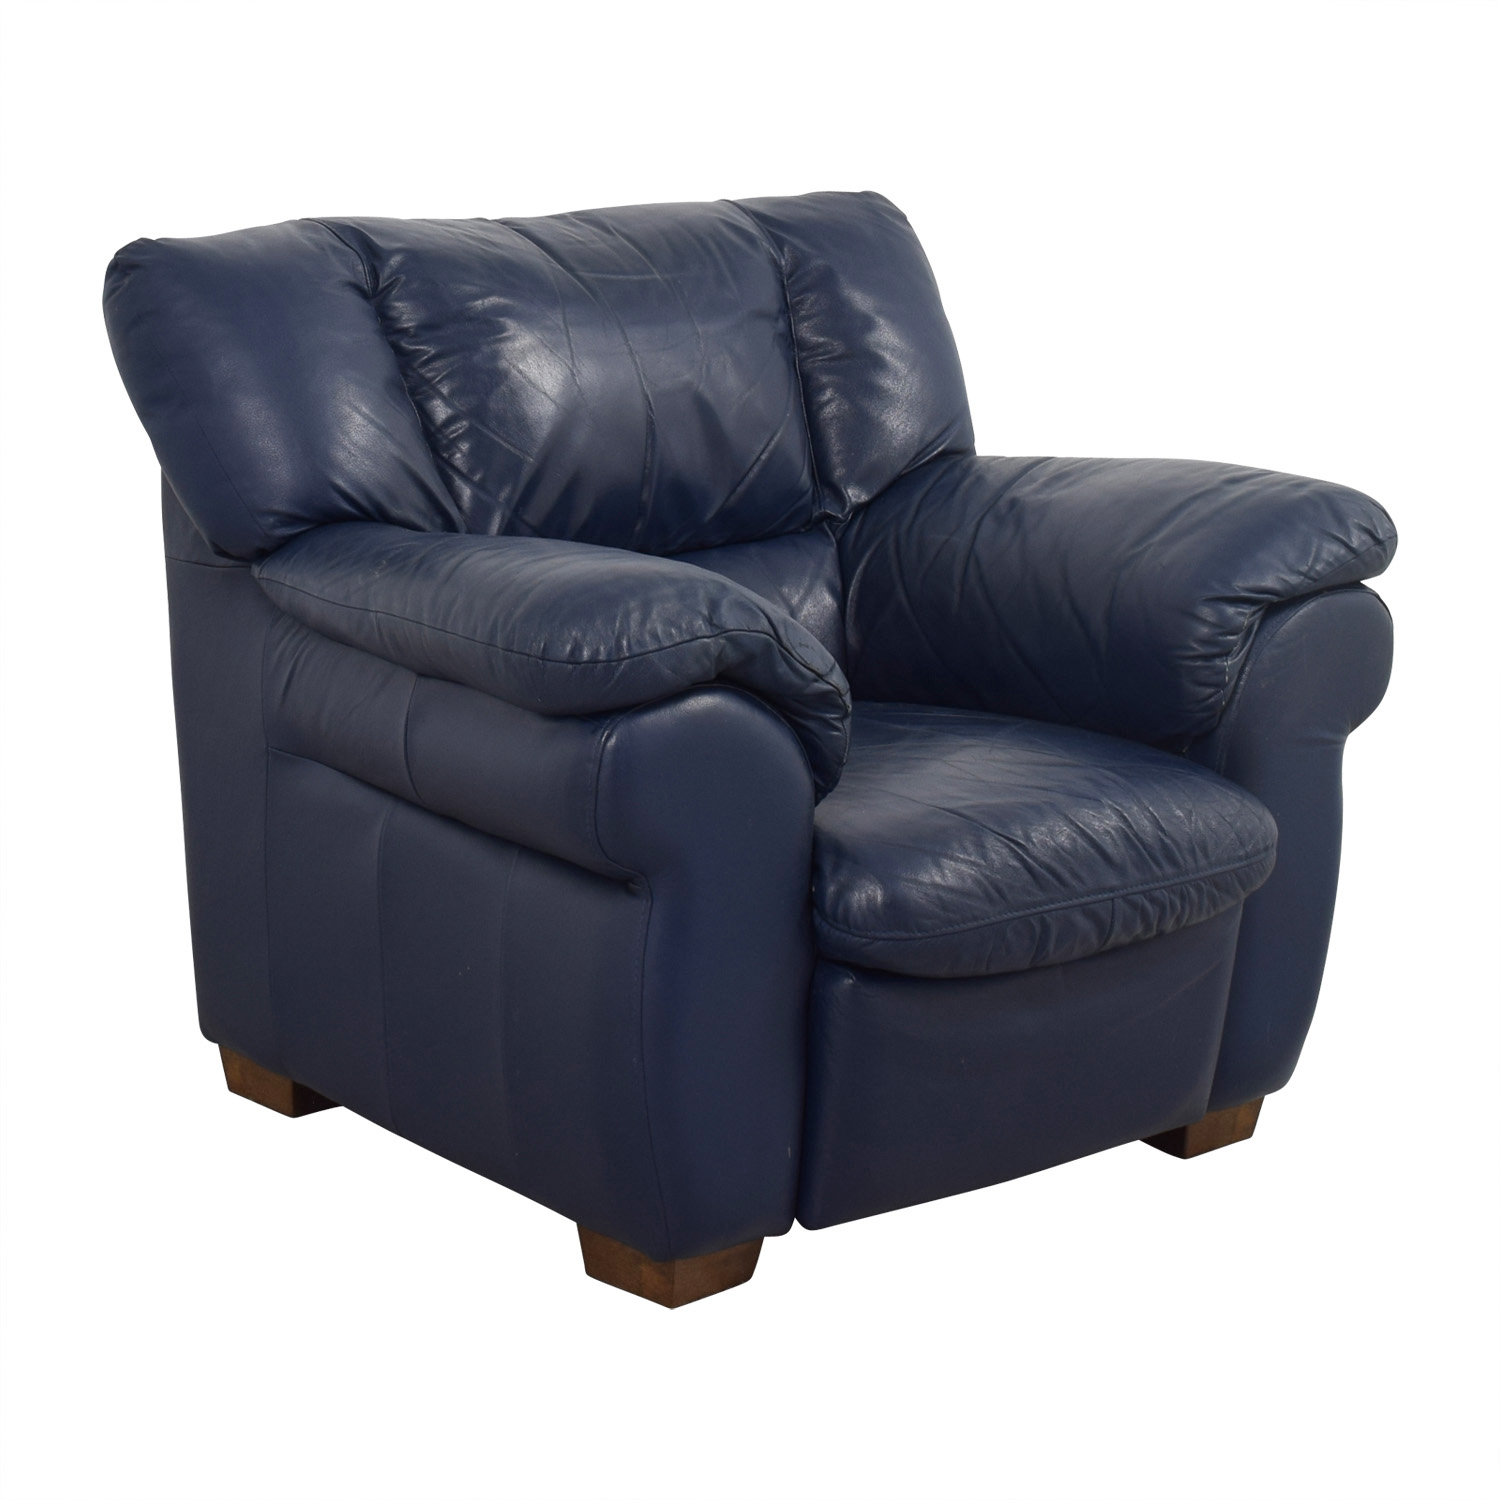 Blue Leather Club Chair 90 Off Macy 39s Macy 39s Navy Blue Leather Sofa Chair Chairs